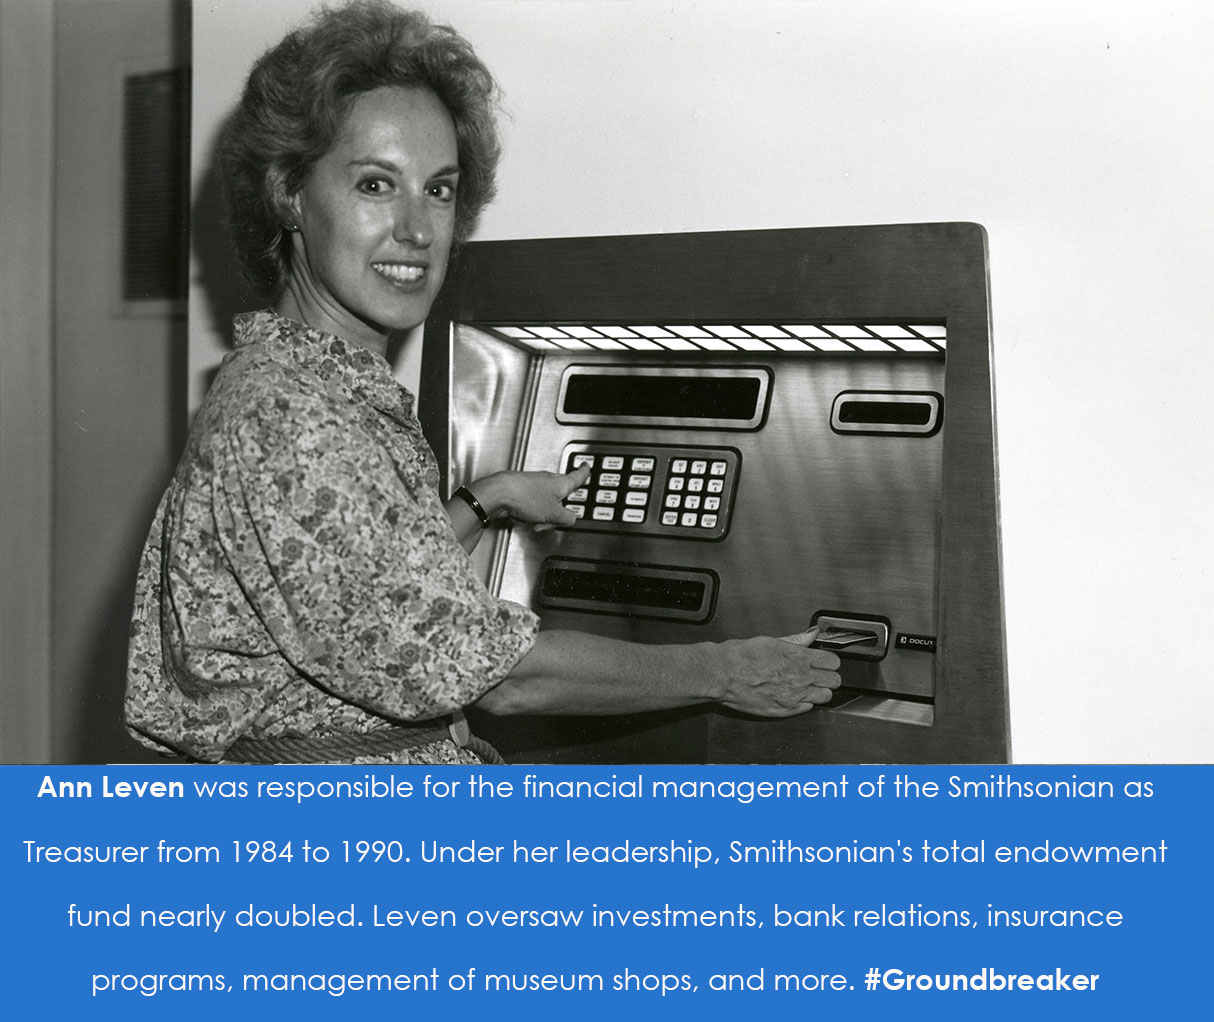 A woman holds a card up to a slot in an ATM machine. She turns to smile at the camera.